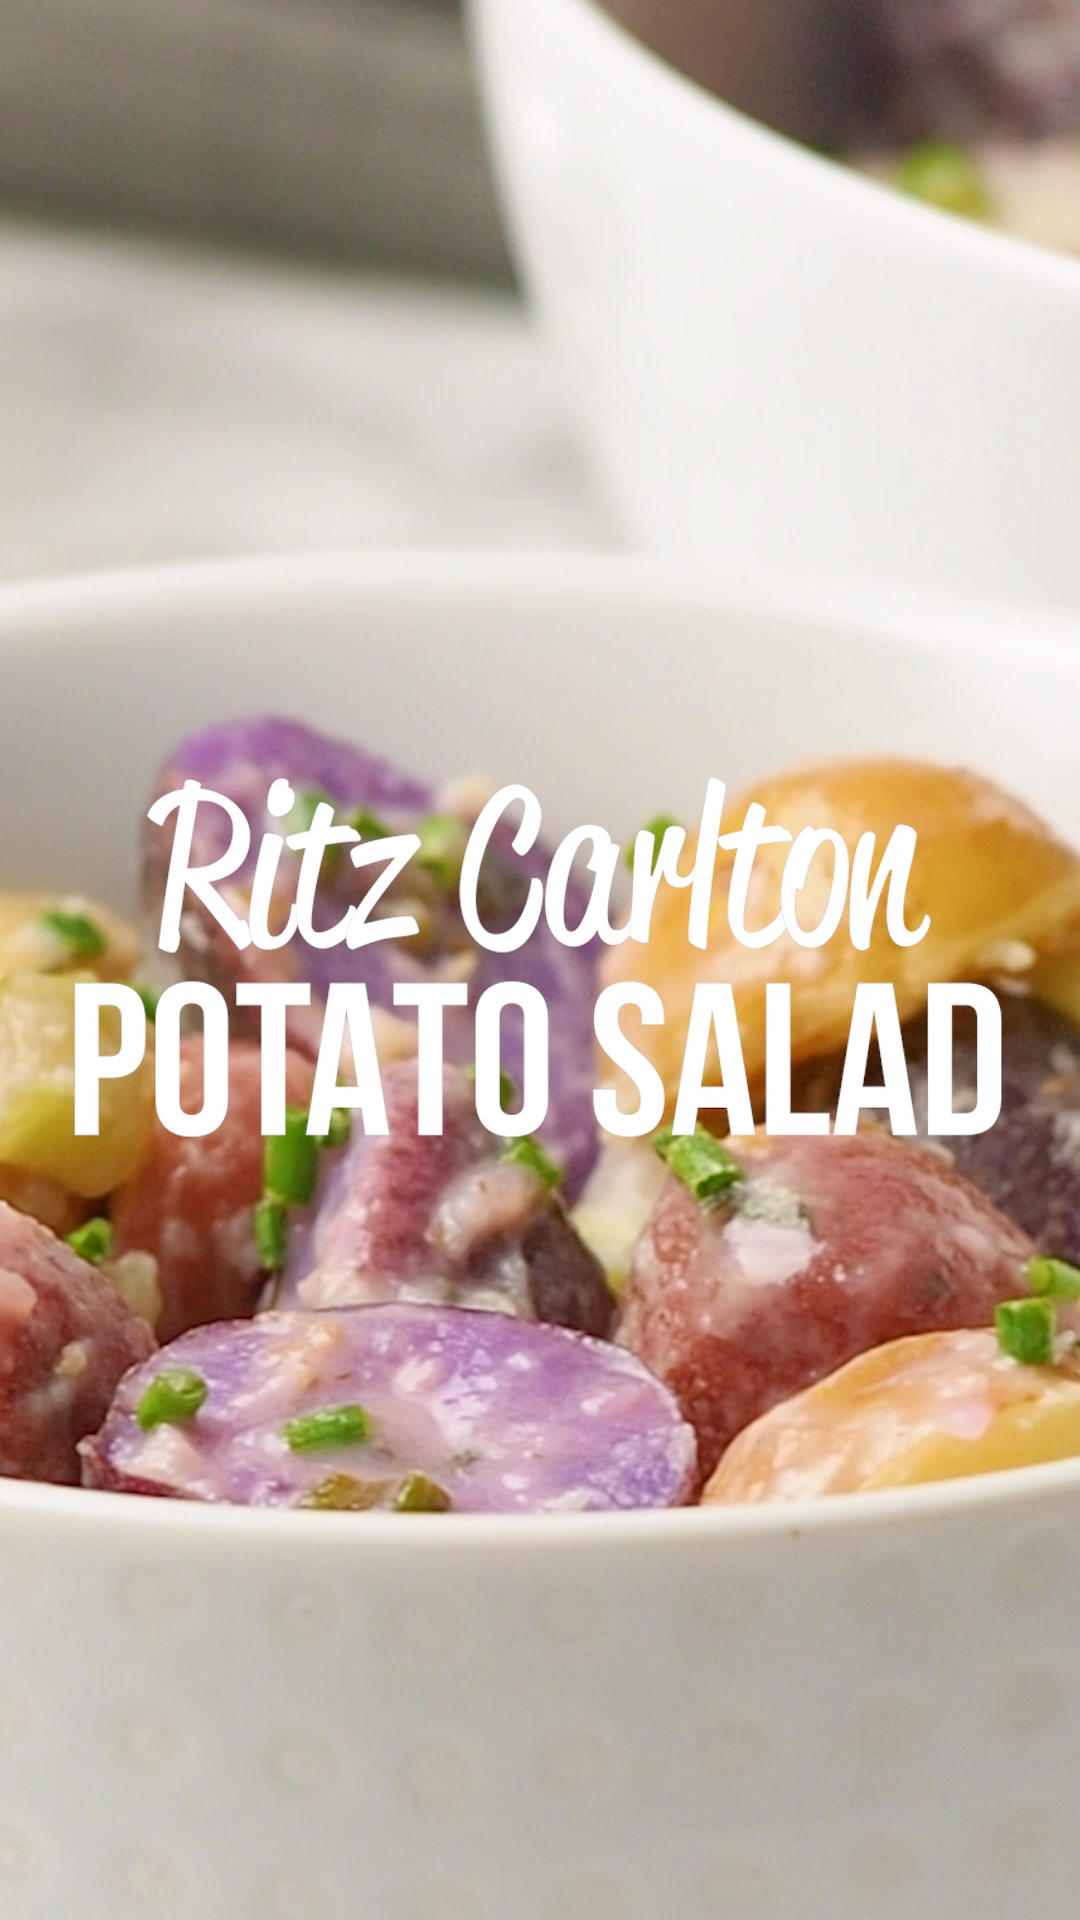 The Ritz Carlton Potato Salad Recipe - heirloom potatoes tossed in mayonnaise, celery, fresh chives and tarragon, and lemon juice - tastes amazing. Can make in advance and refrigerate overnight. Great for potlucks and cookouts. Everyone always asks for the recipe! #sidedish #potatoes #potatosalad #potluck #video #cookingvideo #recipevideo #makeahead #HealthyFoodForHealth